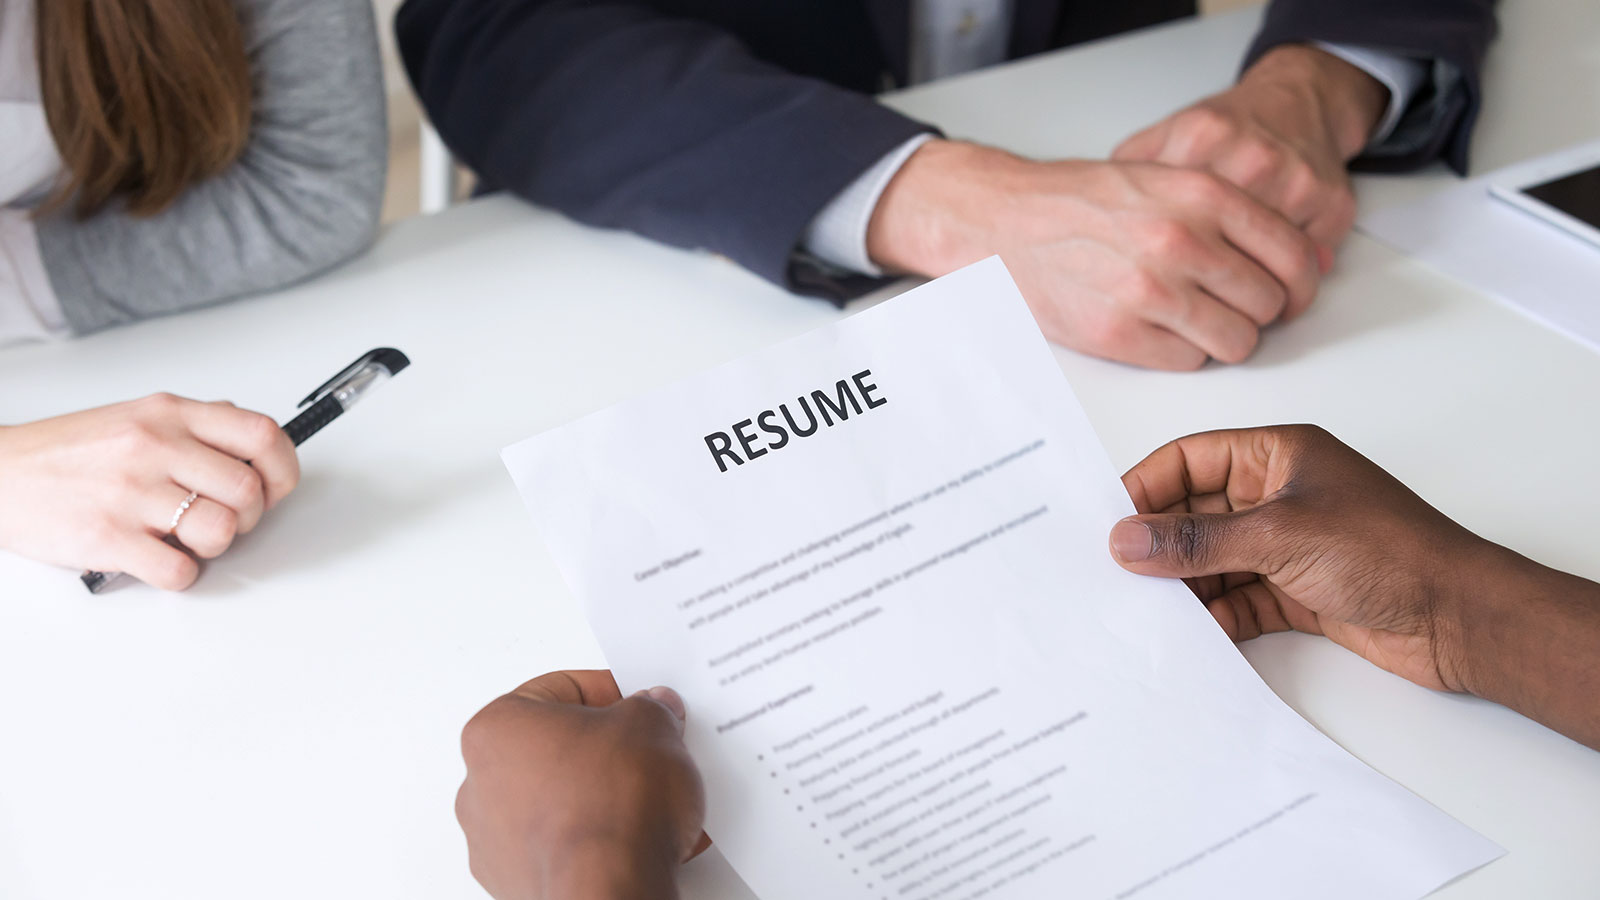 Curriculum vitae vs resume: Key differences and similarities you need to know